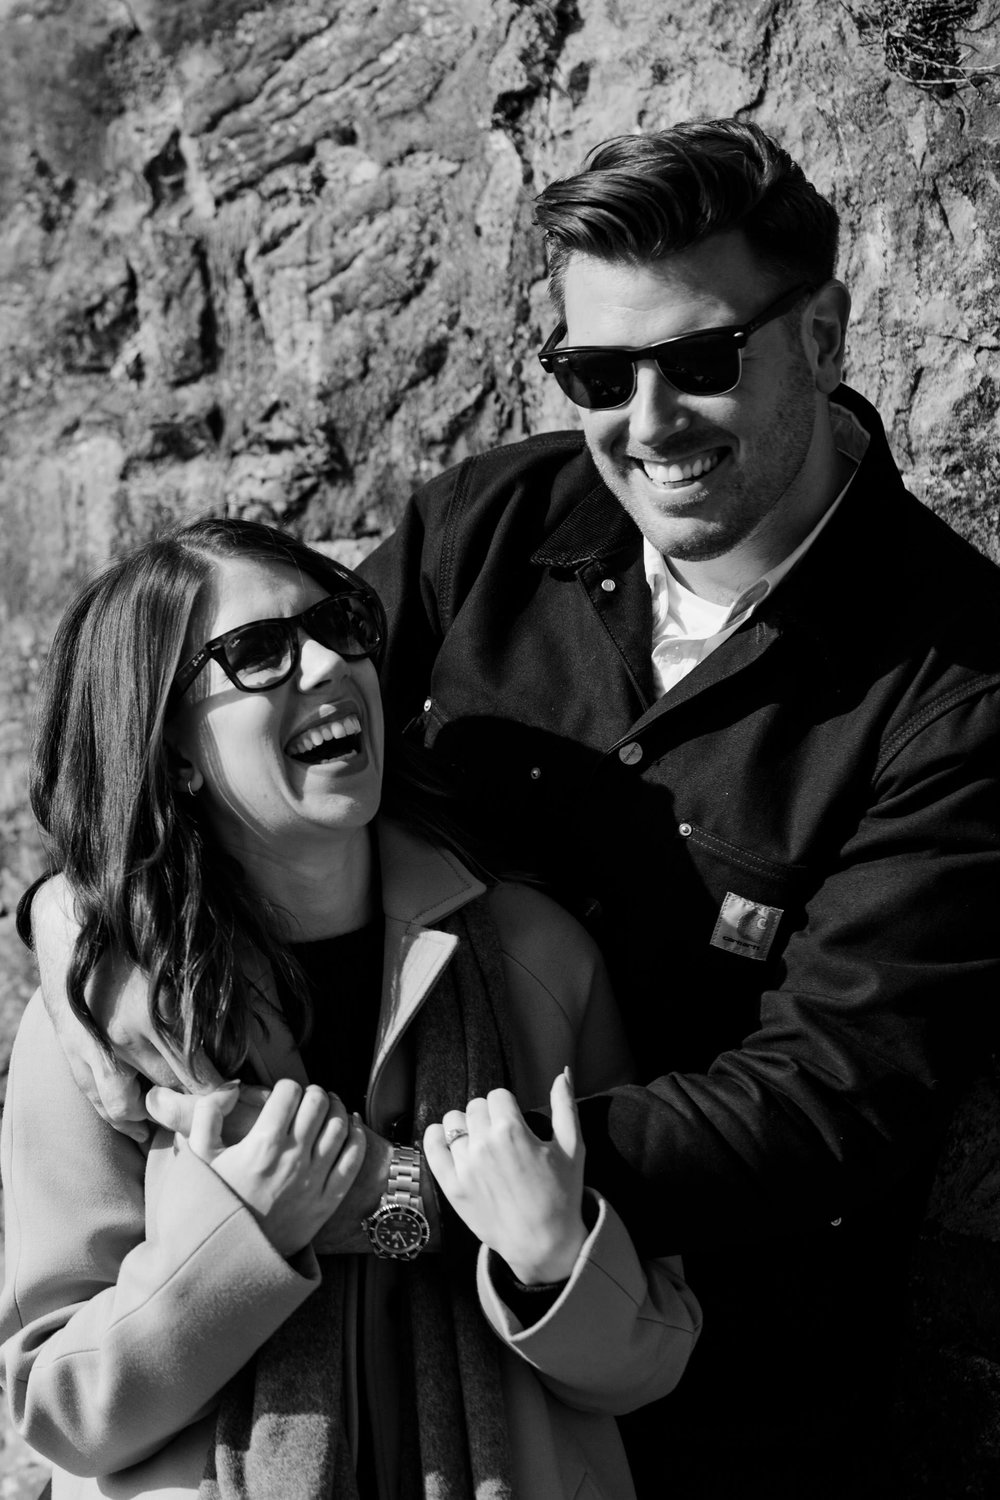 galway_city_engagement_photos_liviafigueiredo_27.jpg